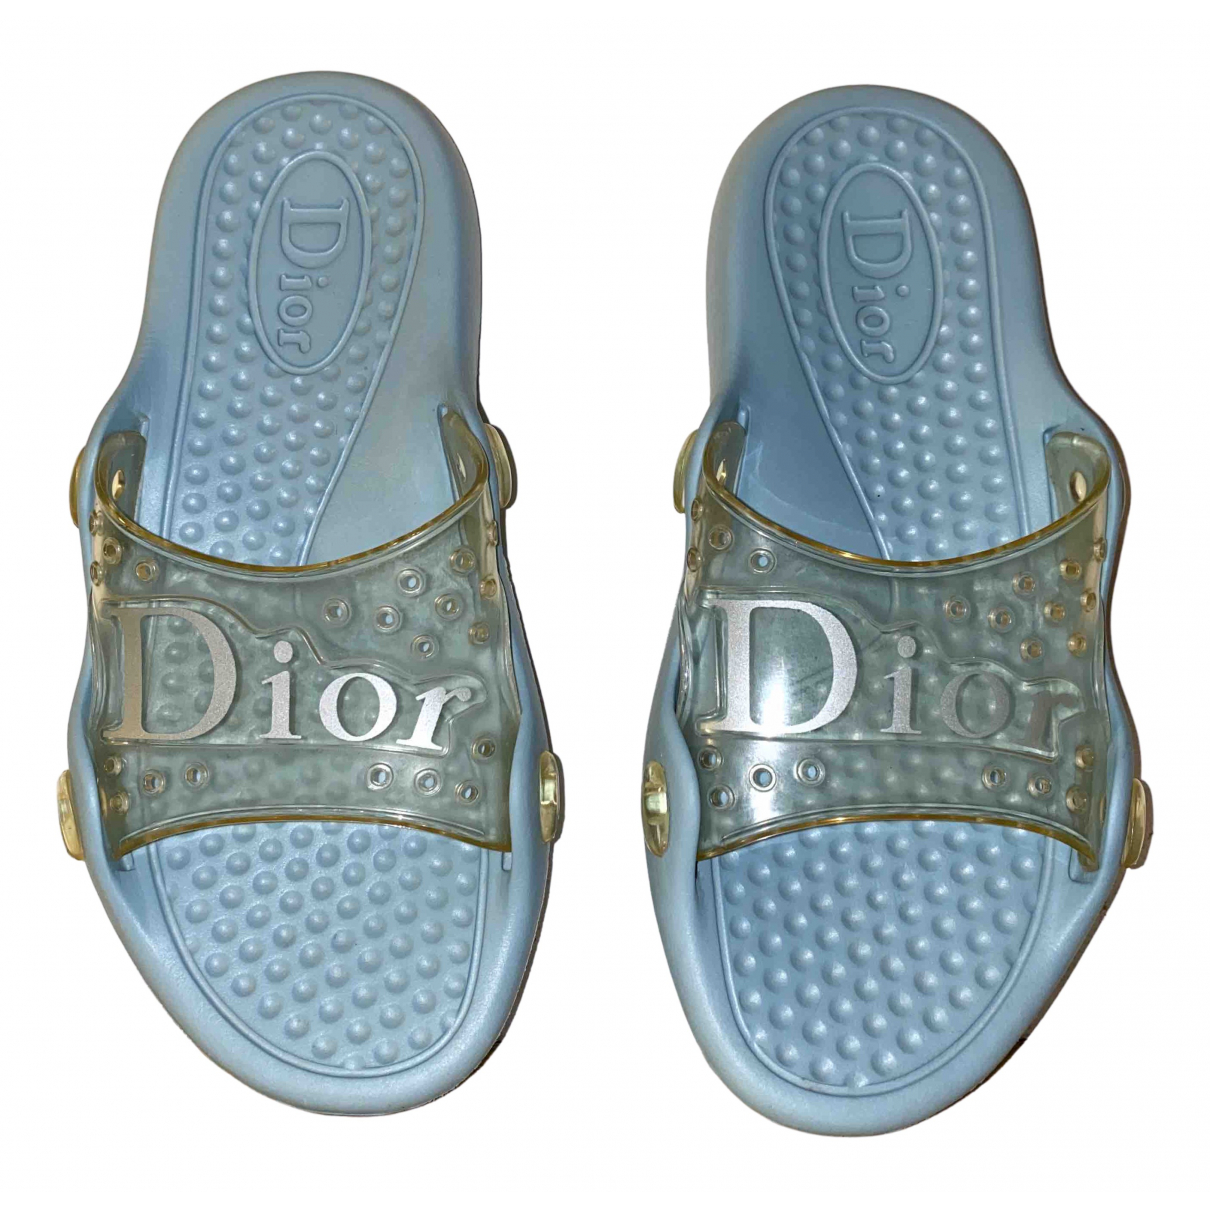 Dior Dio(r)evolution Turquoise Rubber Sandals for Women 37 IT